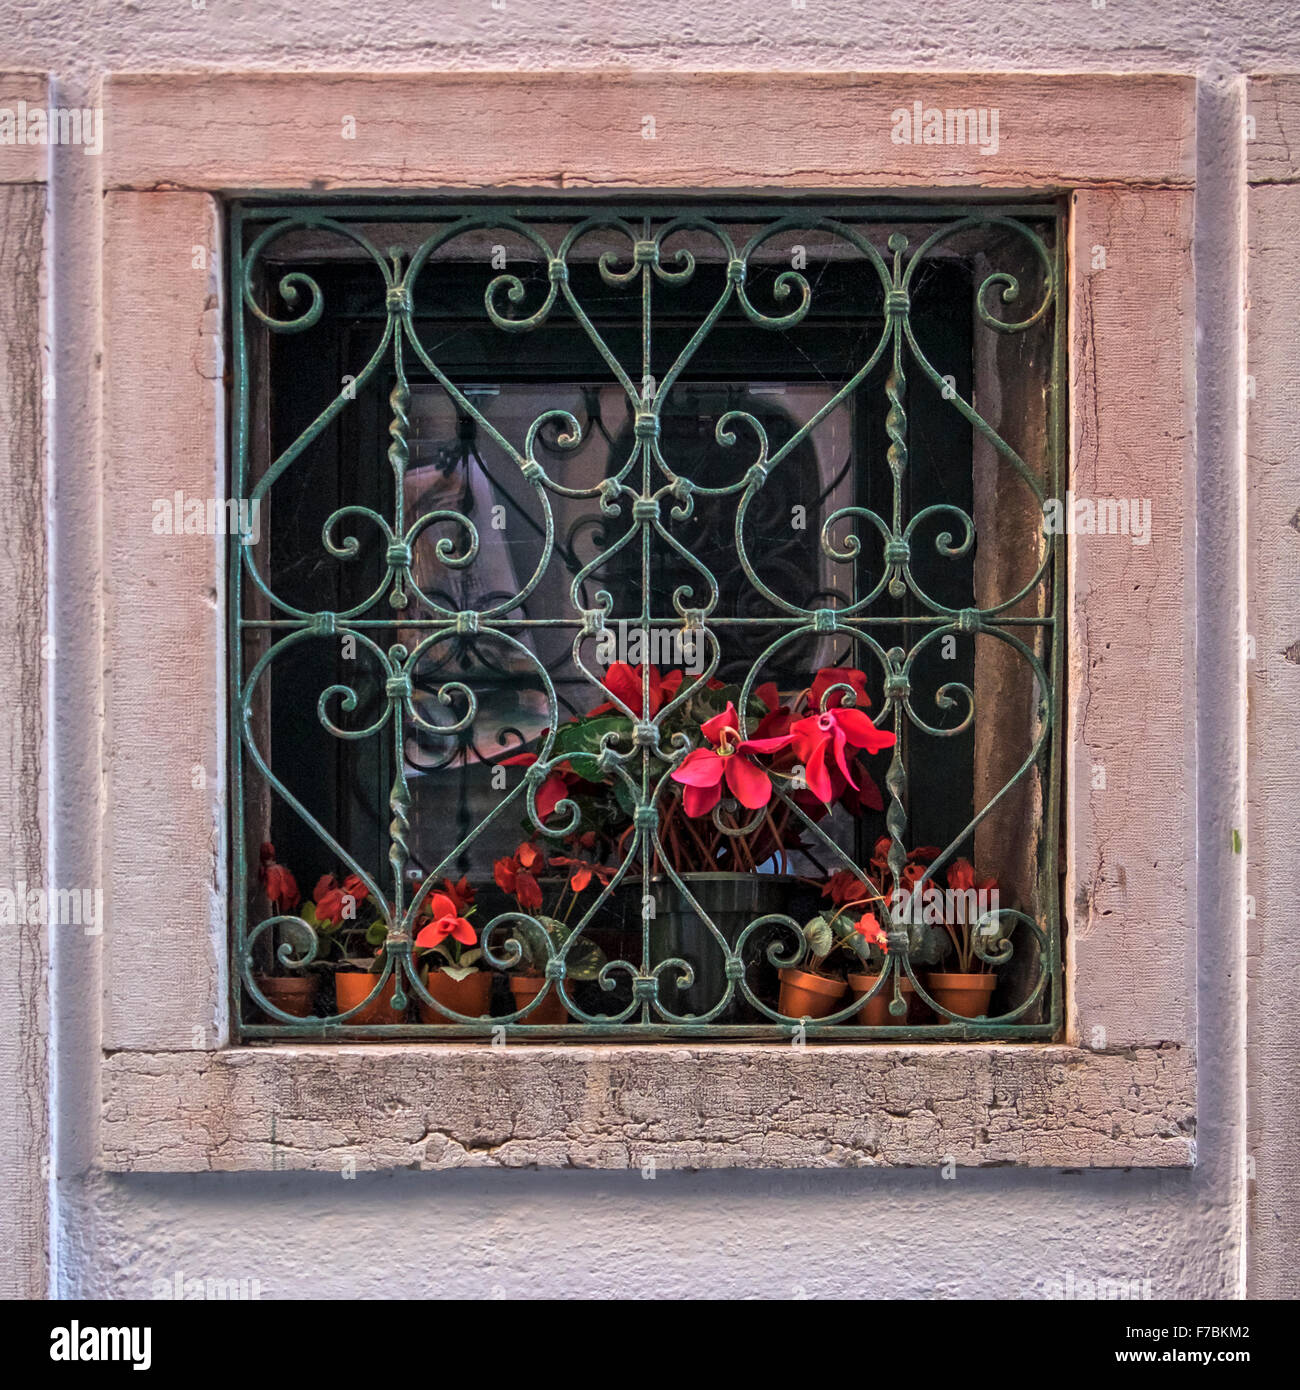 Venice Italy House exterior building detail, window with marble surround, wrought iron burglar proofing & pot plant Stock Photo